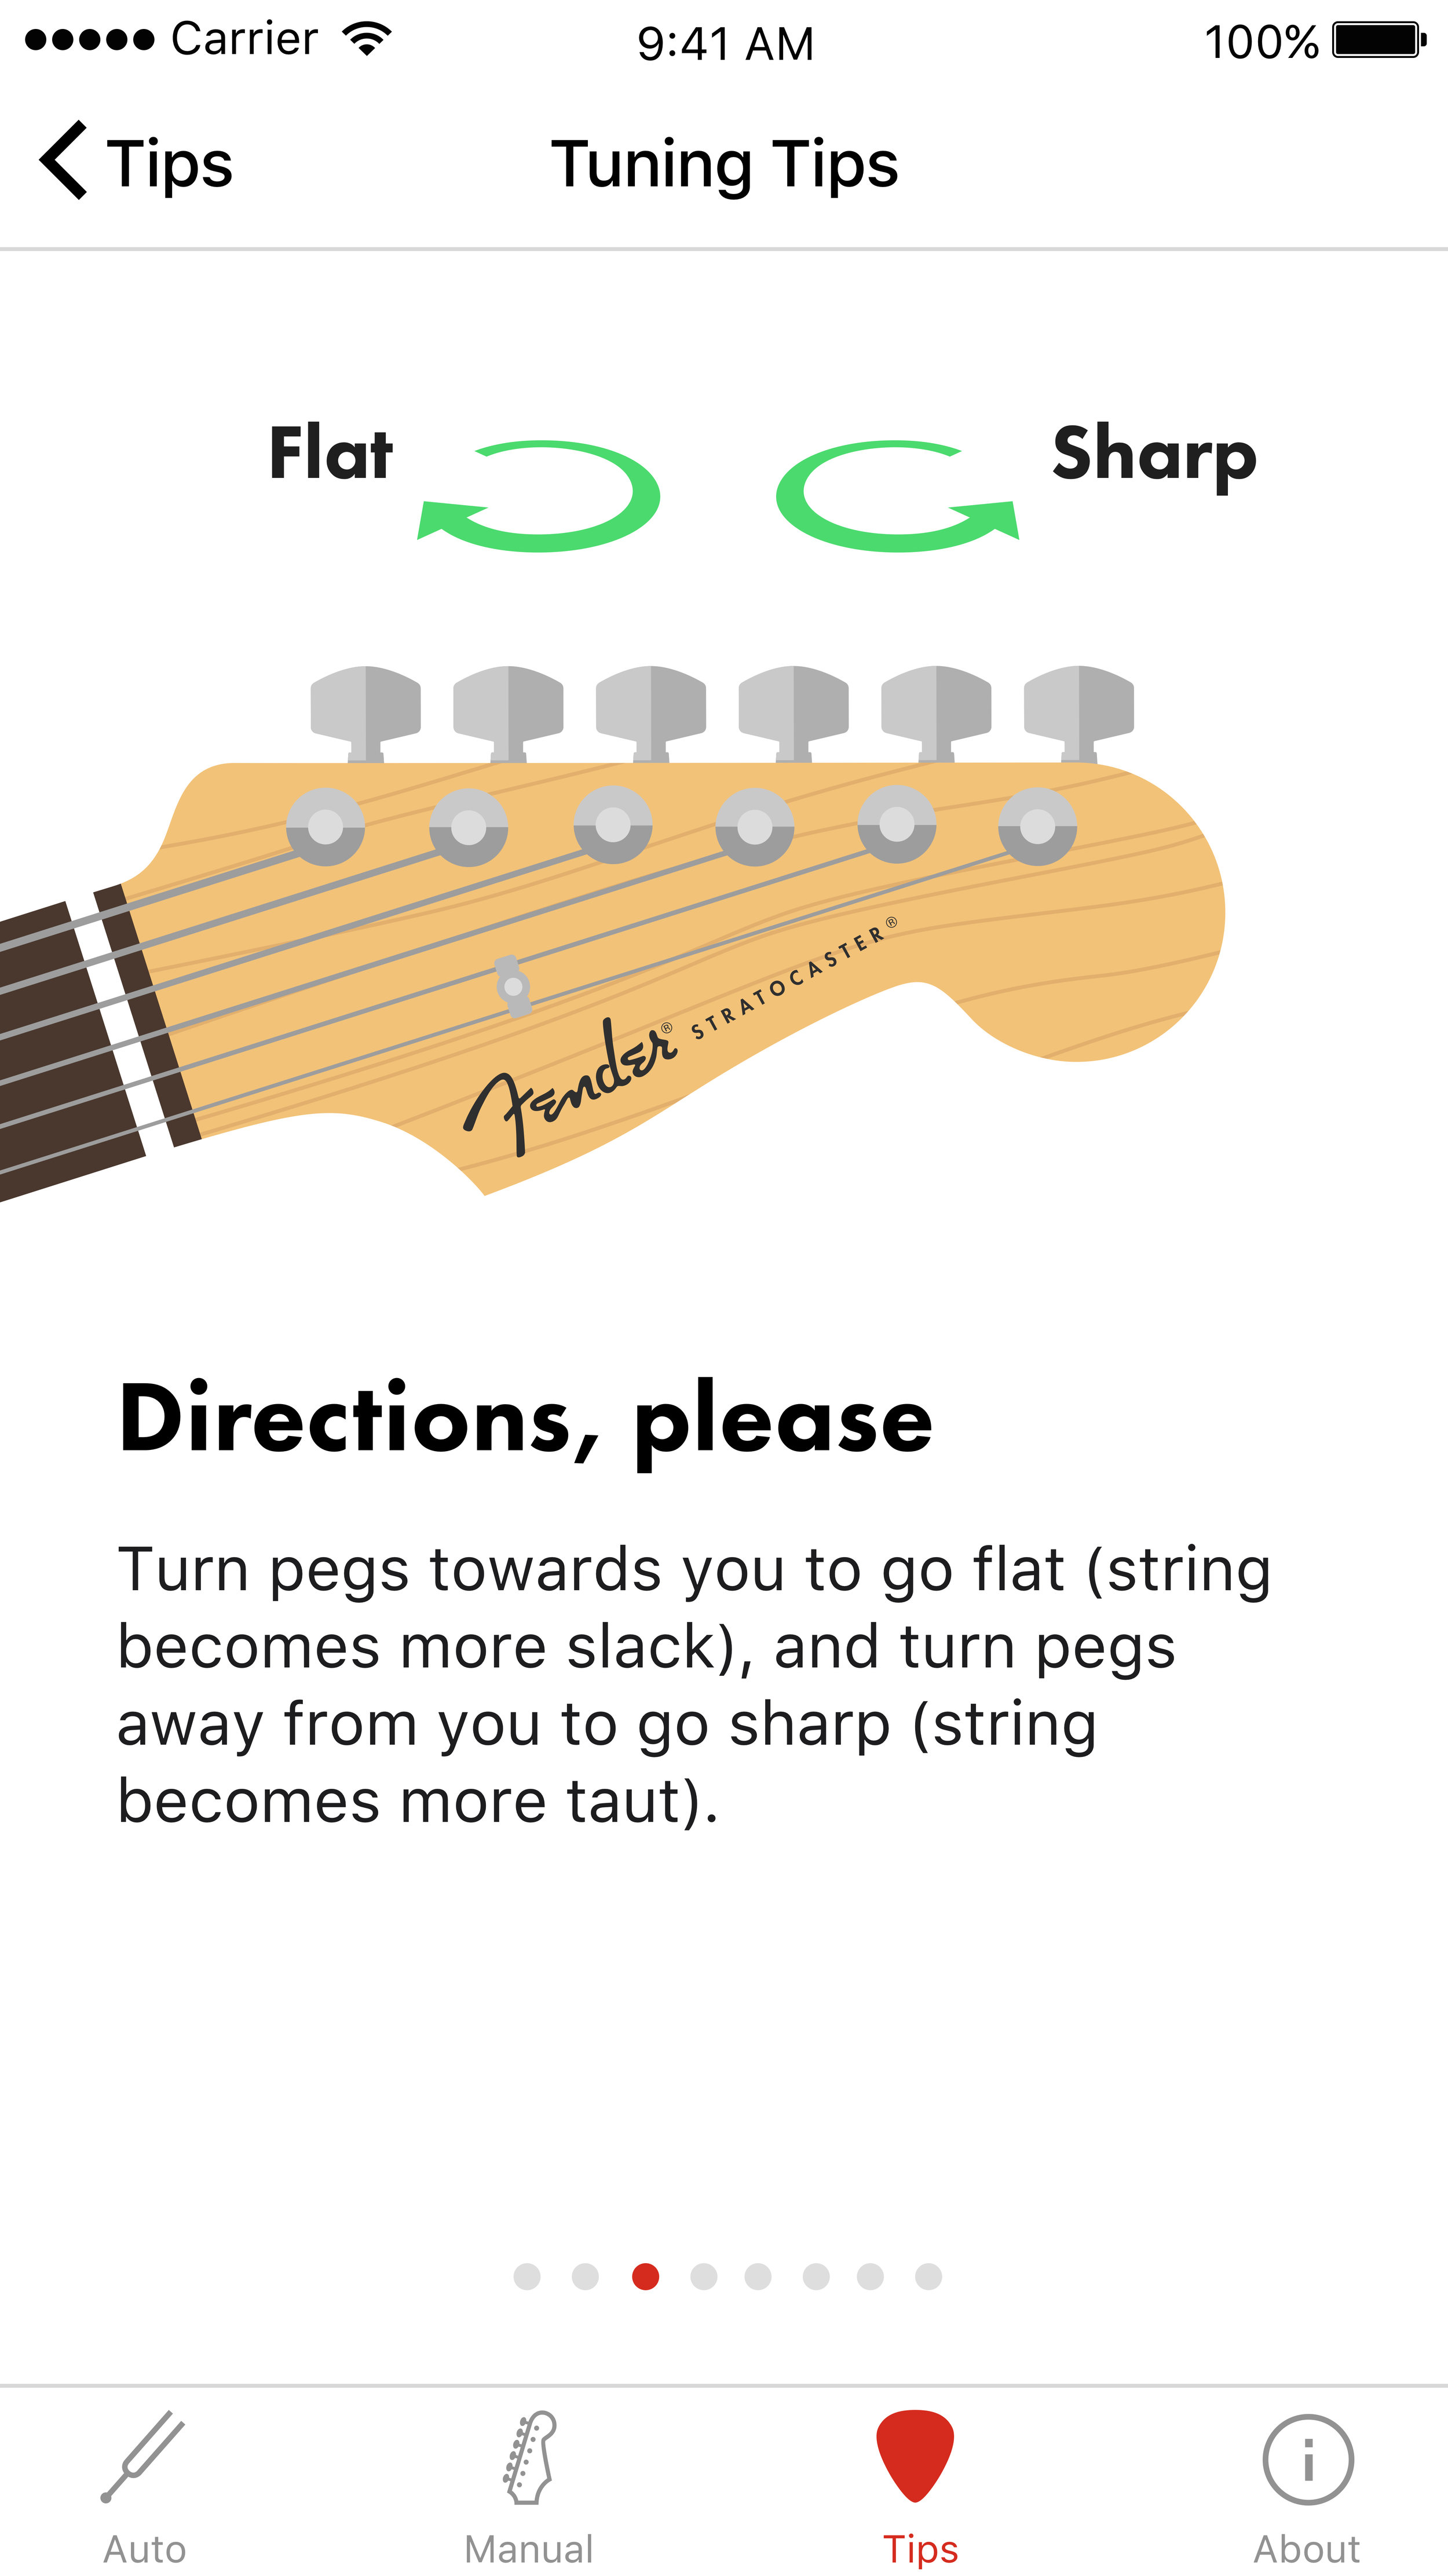 tuning-tips-directions-please.jpg